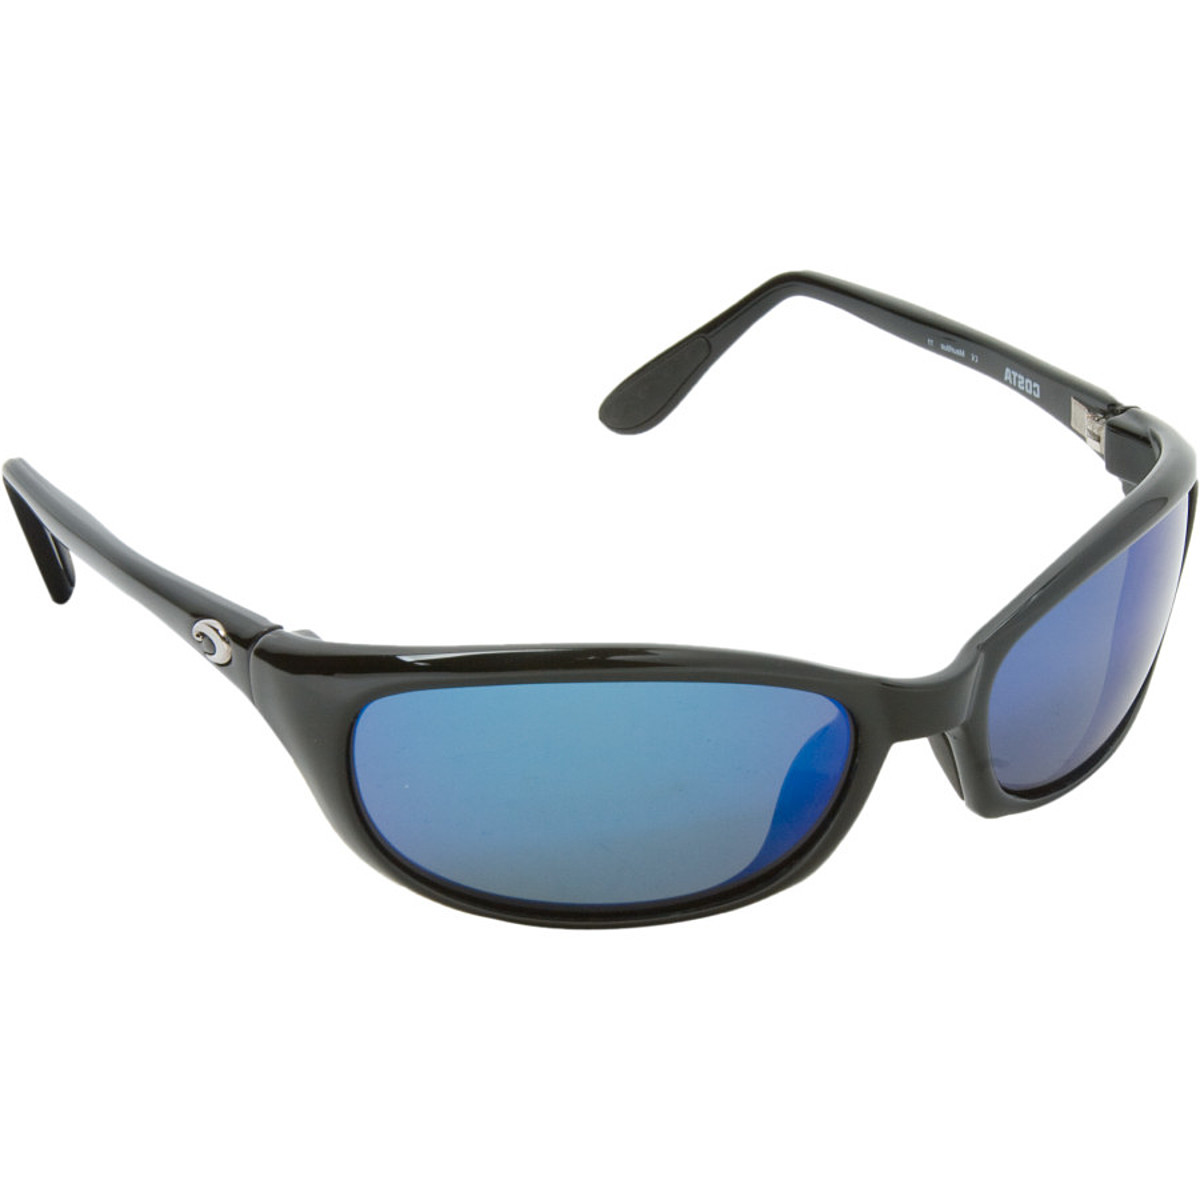 Costa Harpoon 580G Polarized Sunglasses - Women's